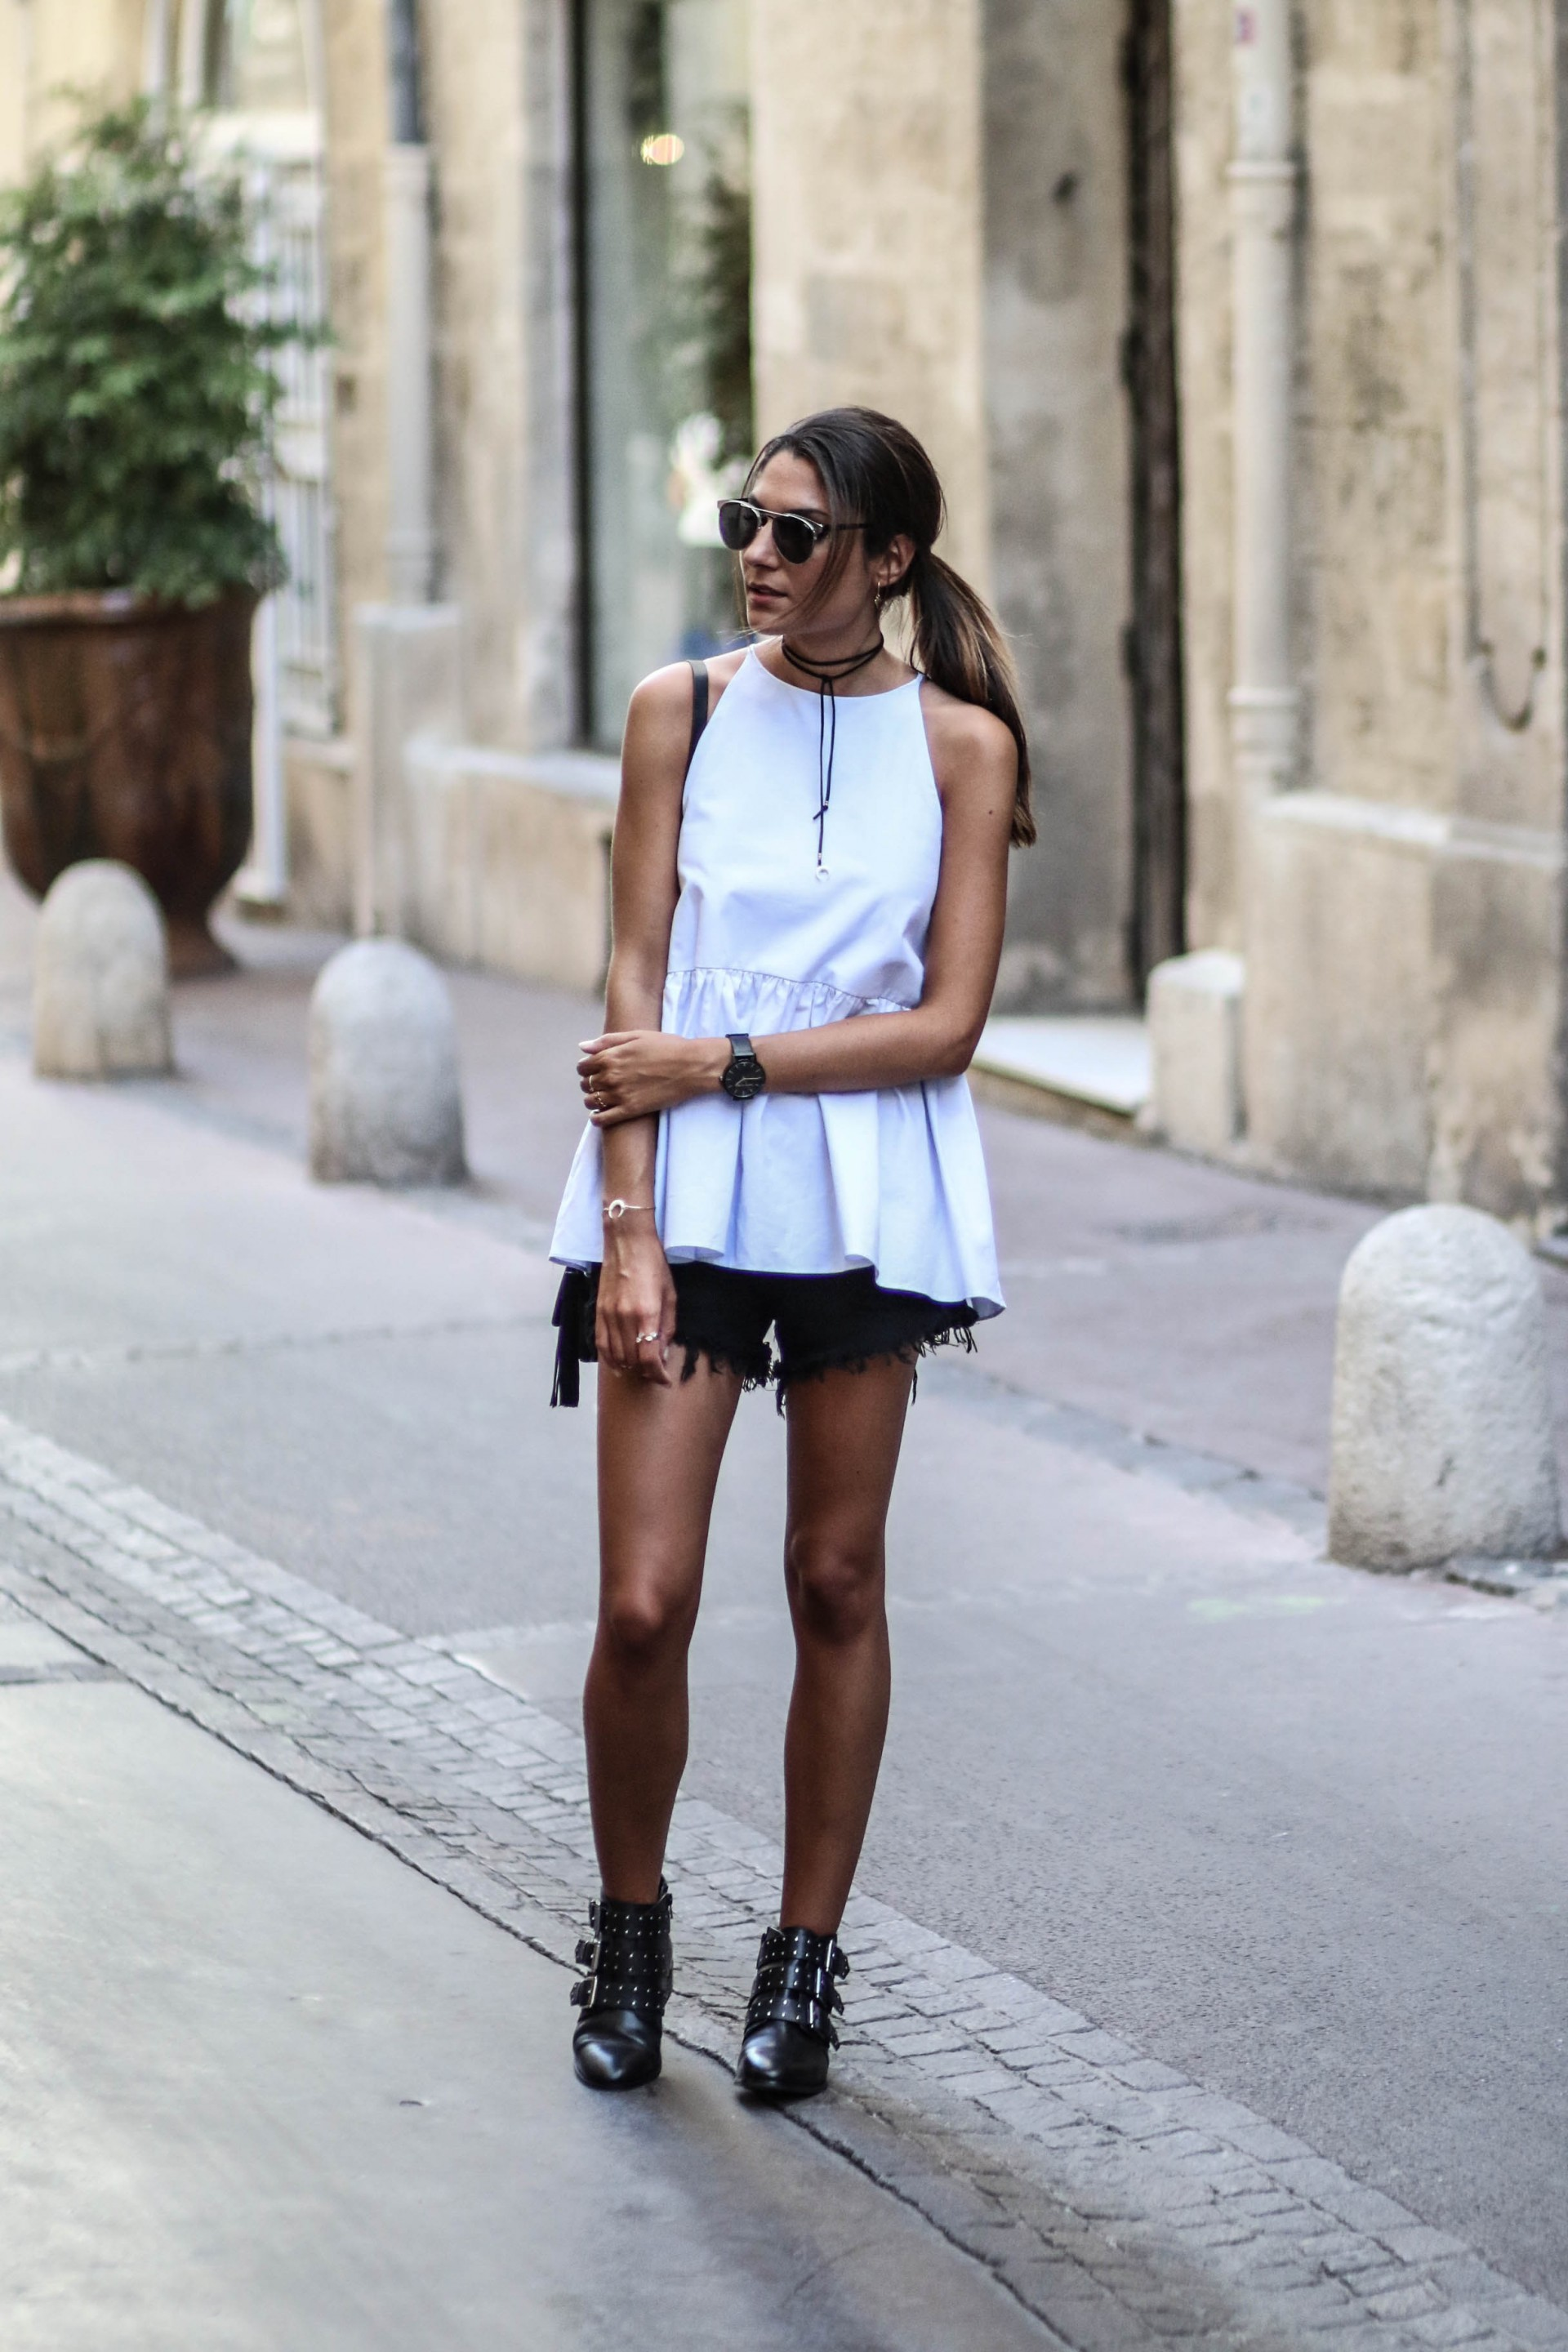 Generate a more punk rock vibe by pairing contrasting colours, and applying more studded materials to your look. Federica L. is rocking this awesome blend of the feminine and the boyish, combining studded ankle boots with a floaty baby blue vest. Top: Zara, Shorts: Shein, Shoes: Asos.